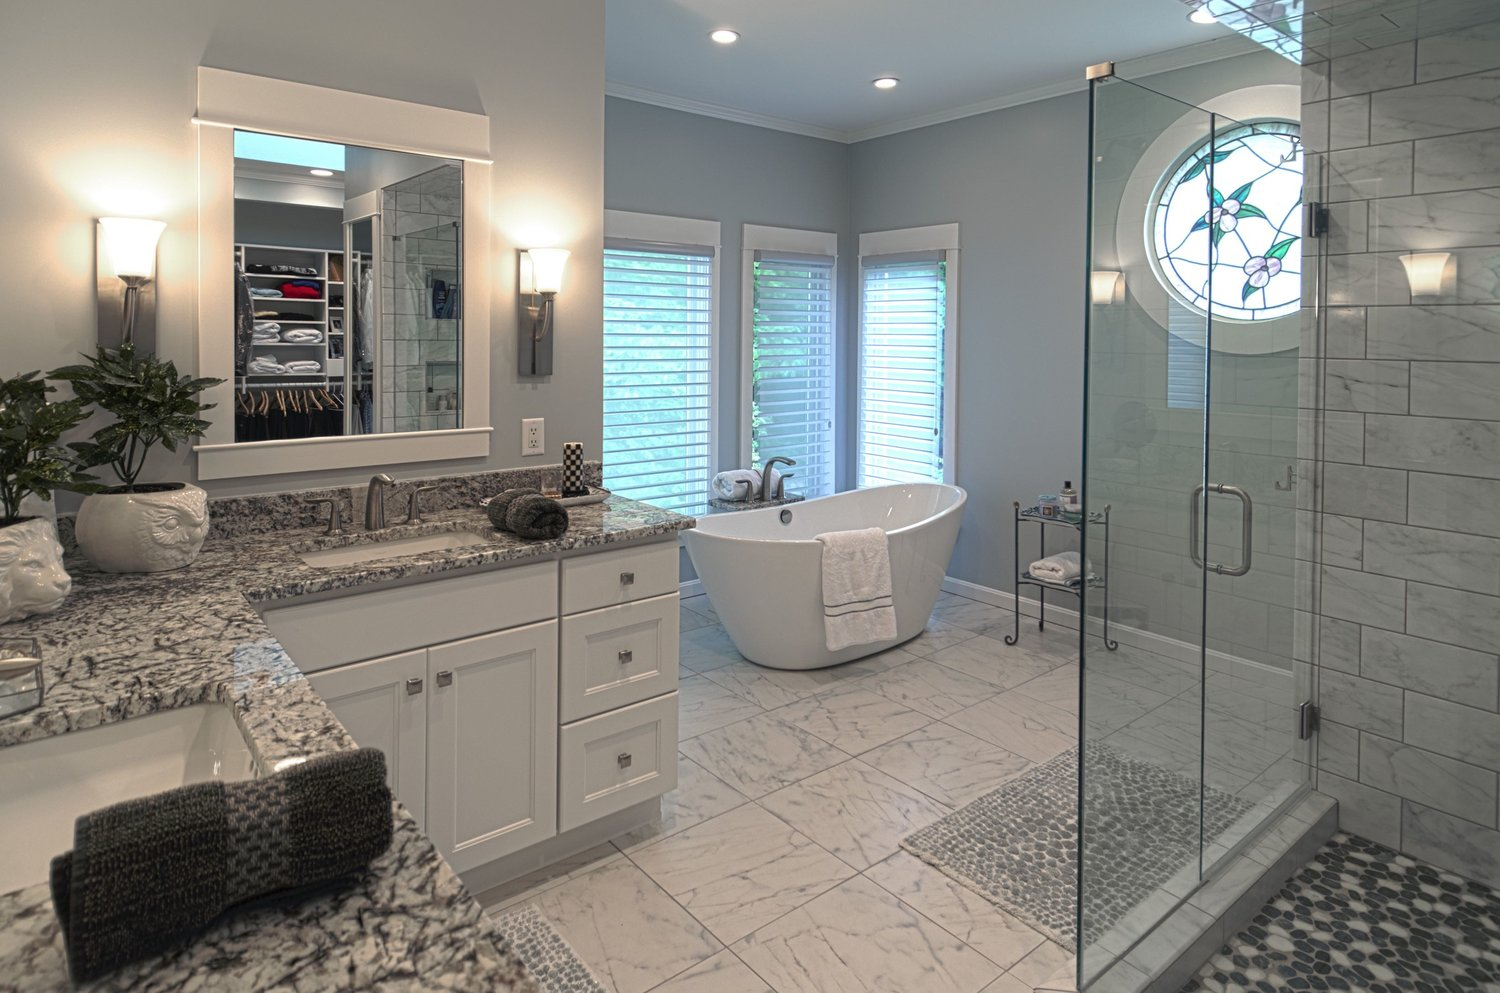 How Much Does Bathroom Remodel Cost in In Los Angeles?